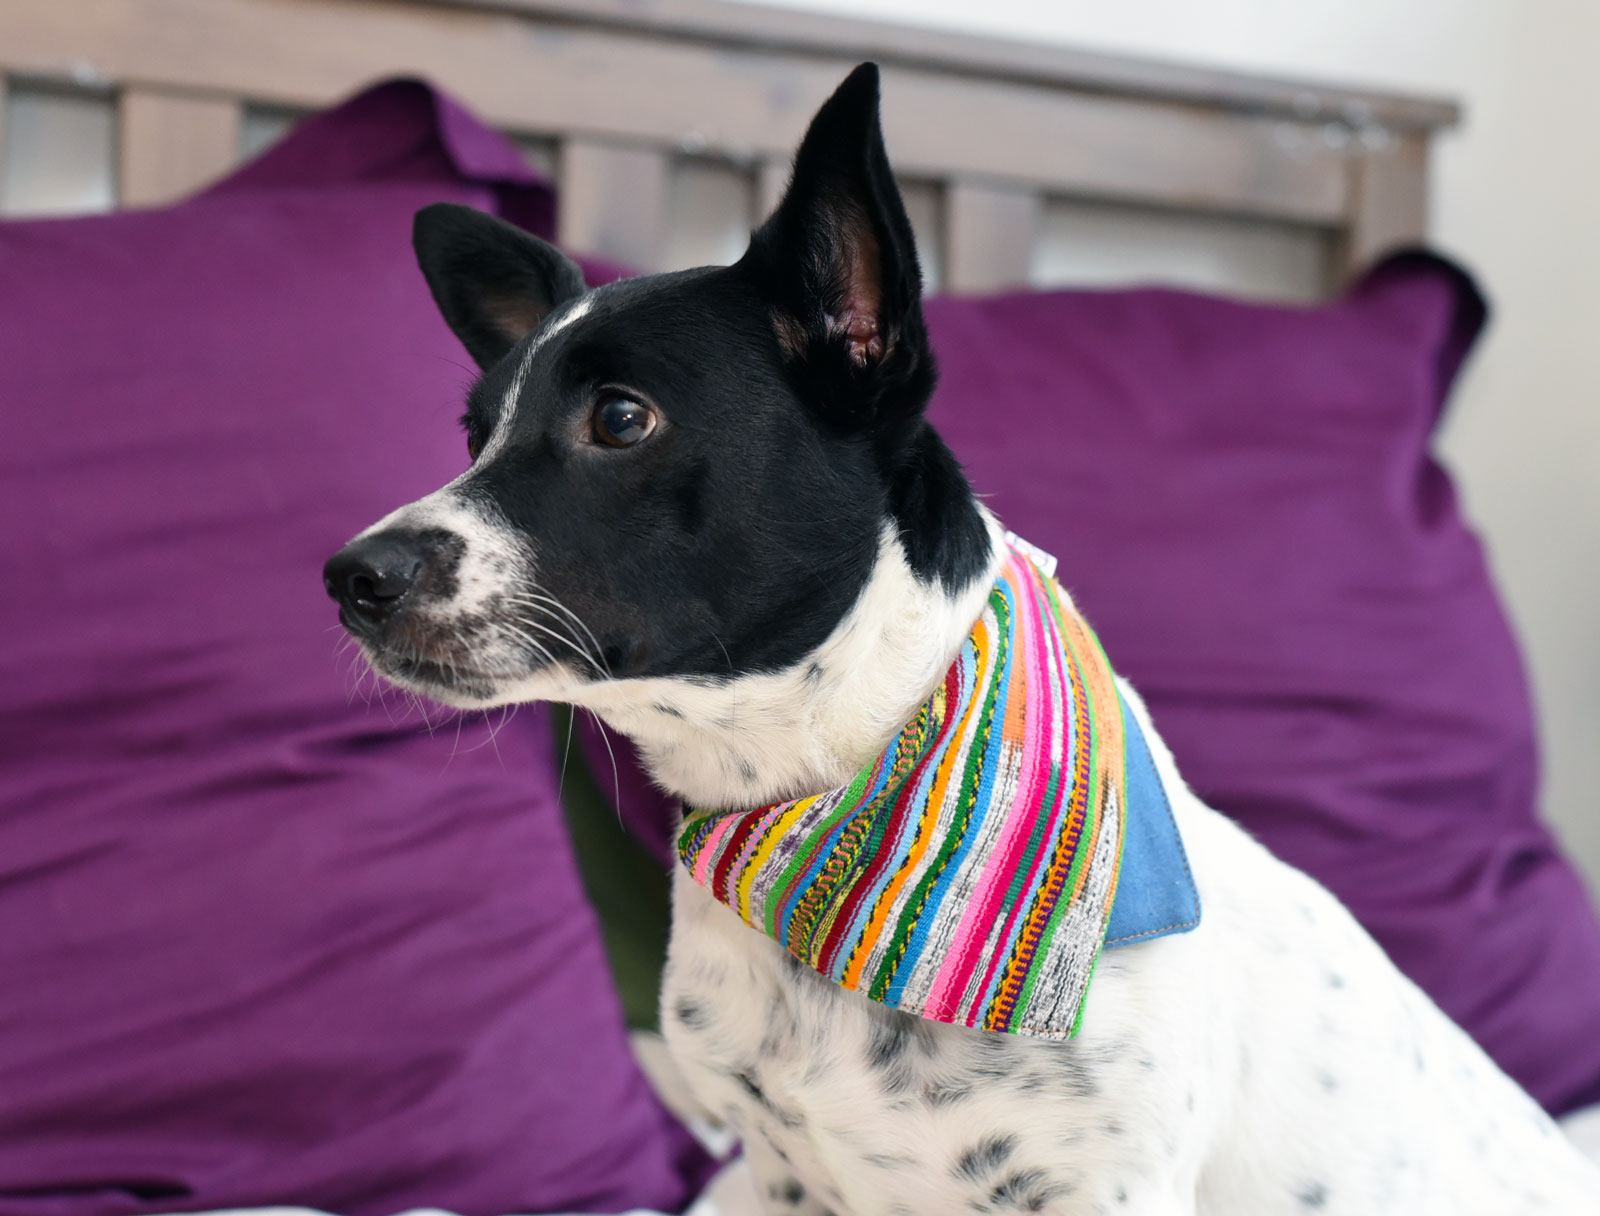 Looking for a stylish gift for a dog-loving friends?Jazal Color makes stunning dog bandanas from handwoven Guatemalan textiles. Learn more about this great company and their incredible products!